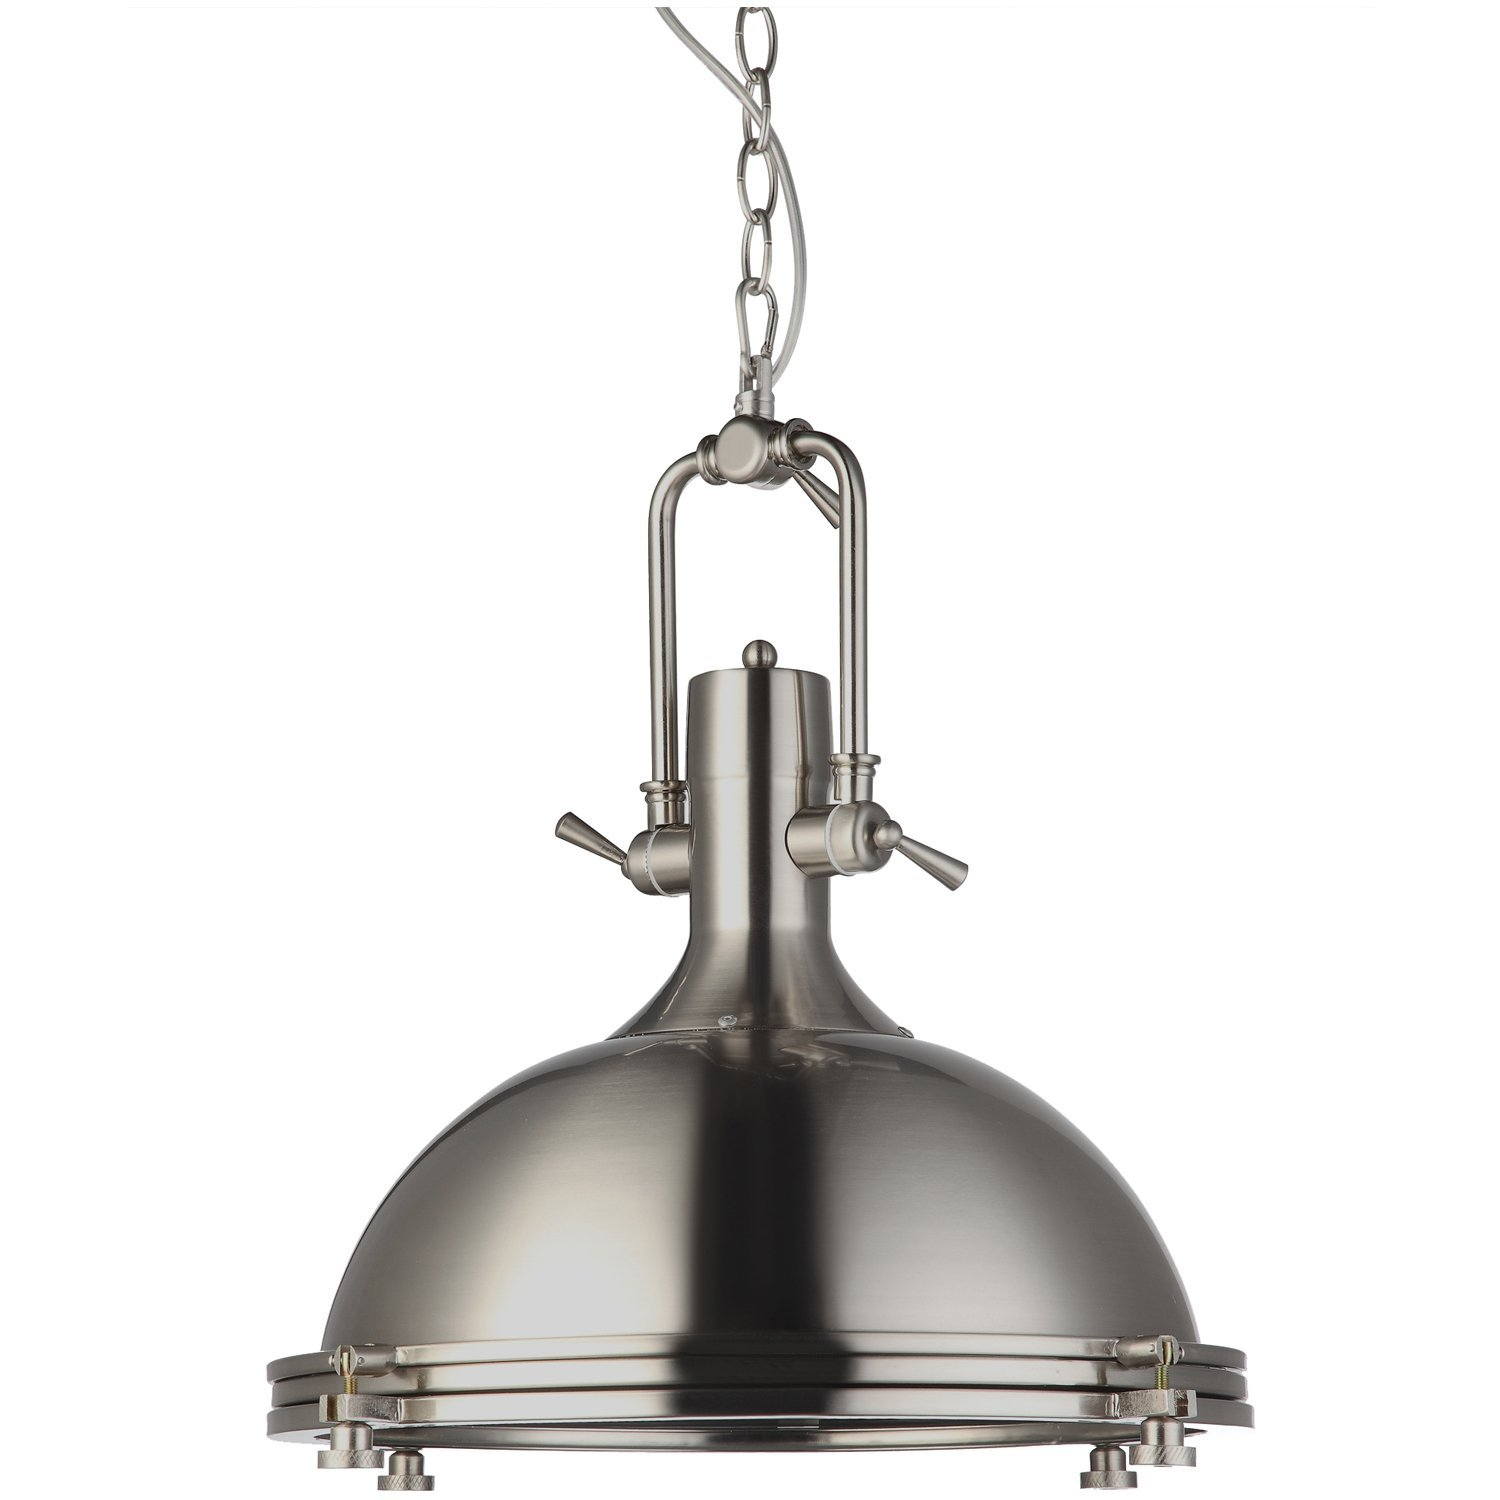 "VONN VVP21031SN Industrial 16"" LED Pendant Light, Industrial Pendant Lighting, Adjustable Hanging Light, Dorado Collection, Satin Nickel"